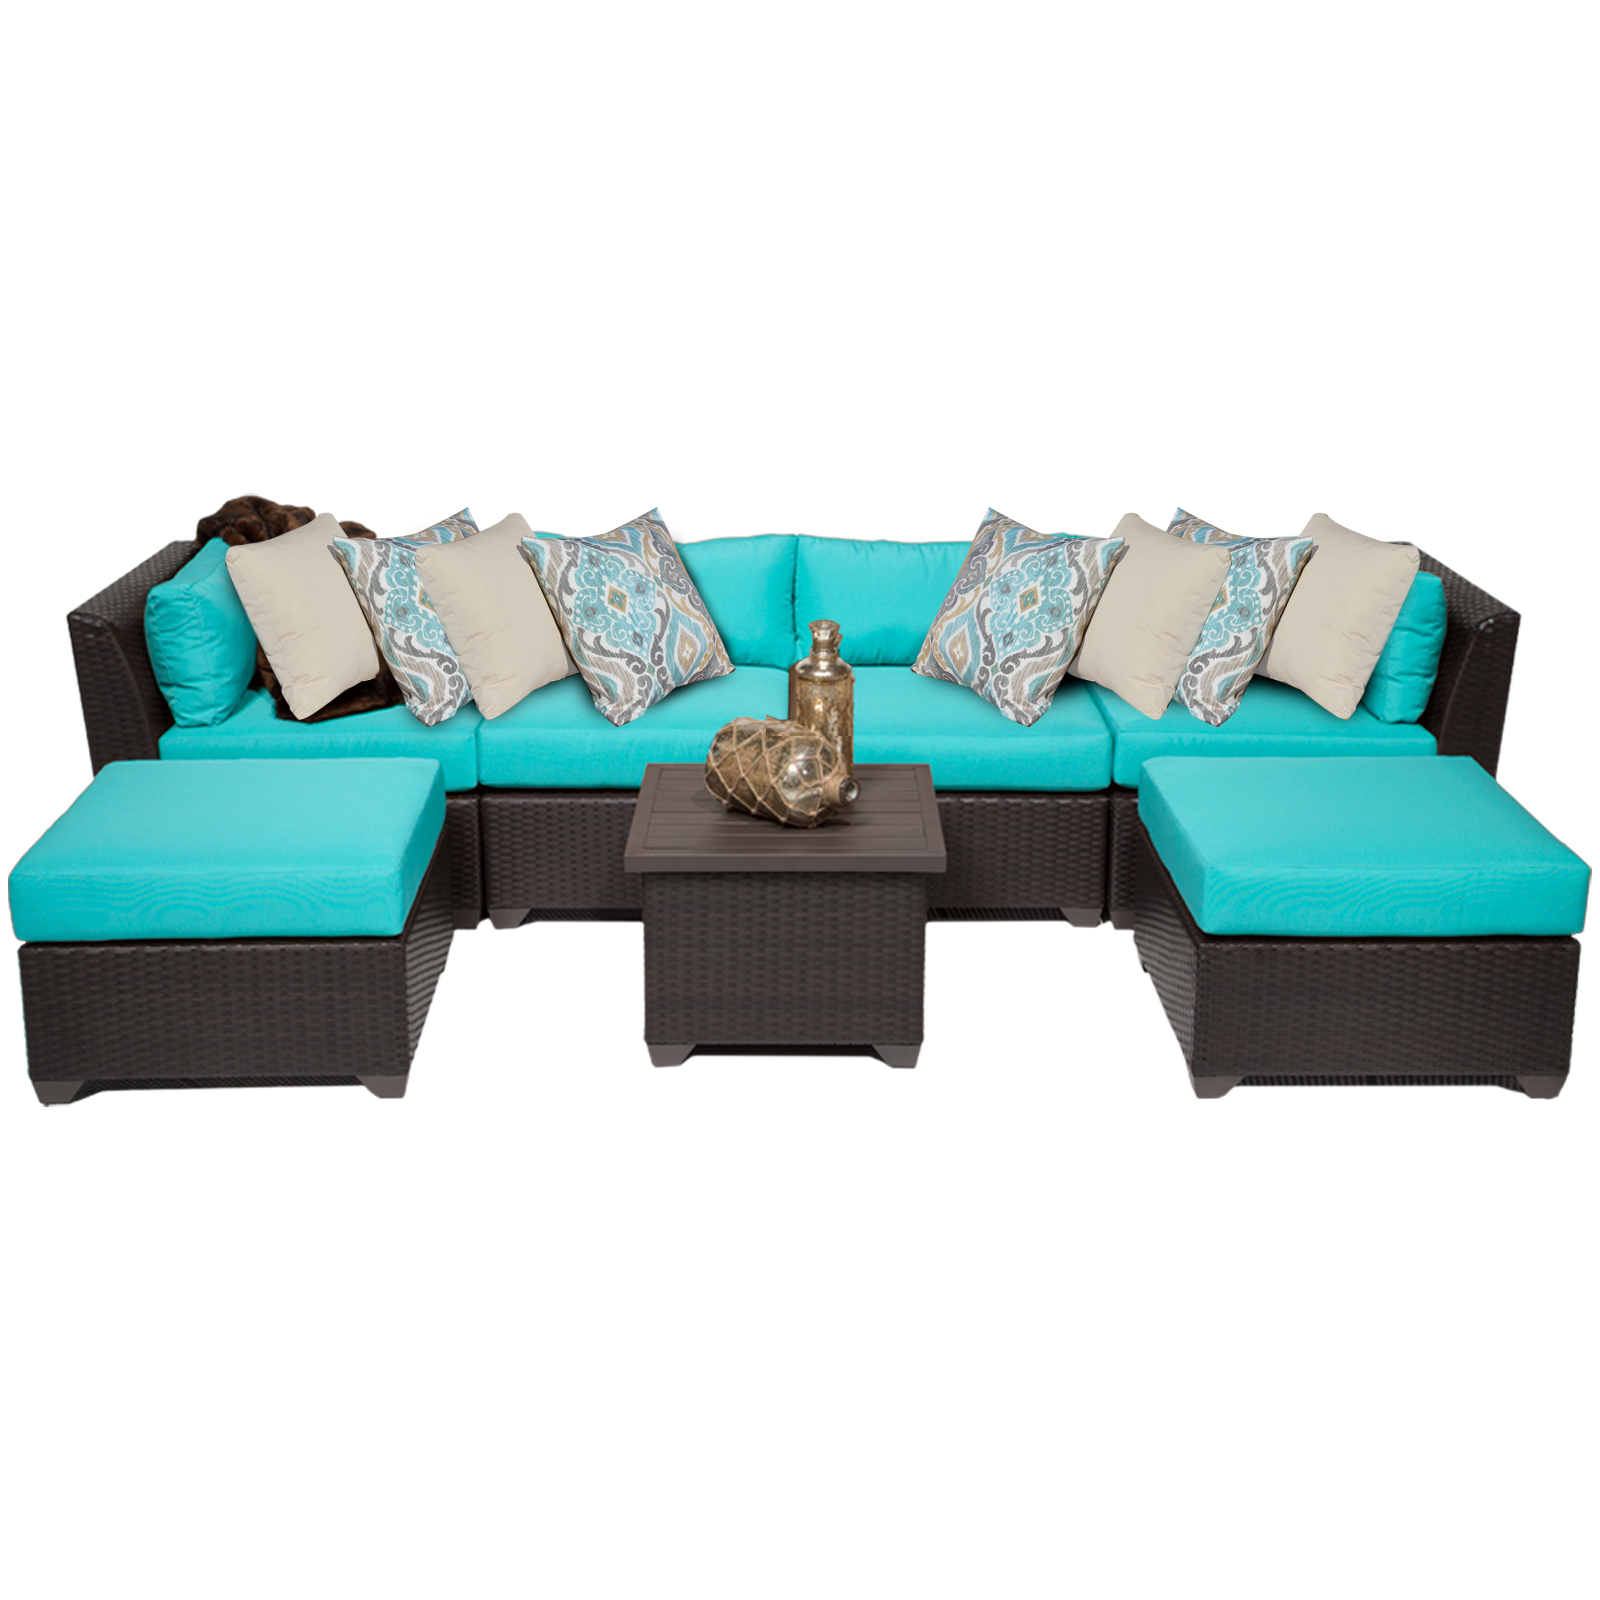 Bermuda 7 Piece Outdoor Wicker Patio Furniture Set 07a